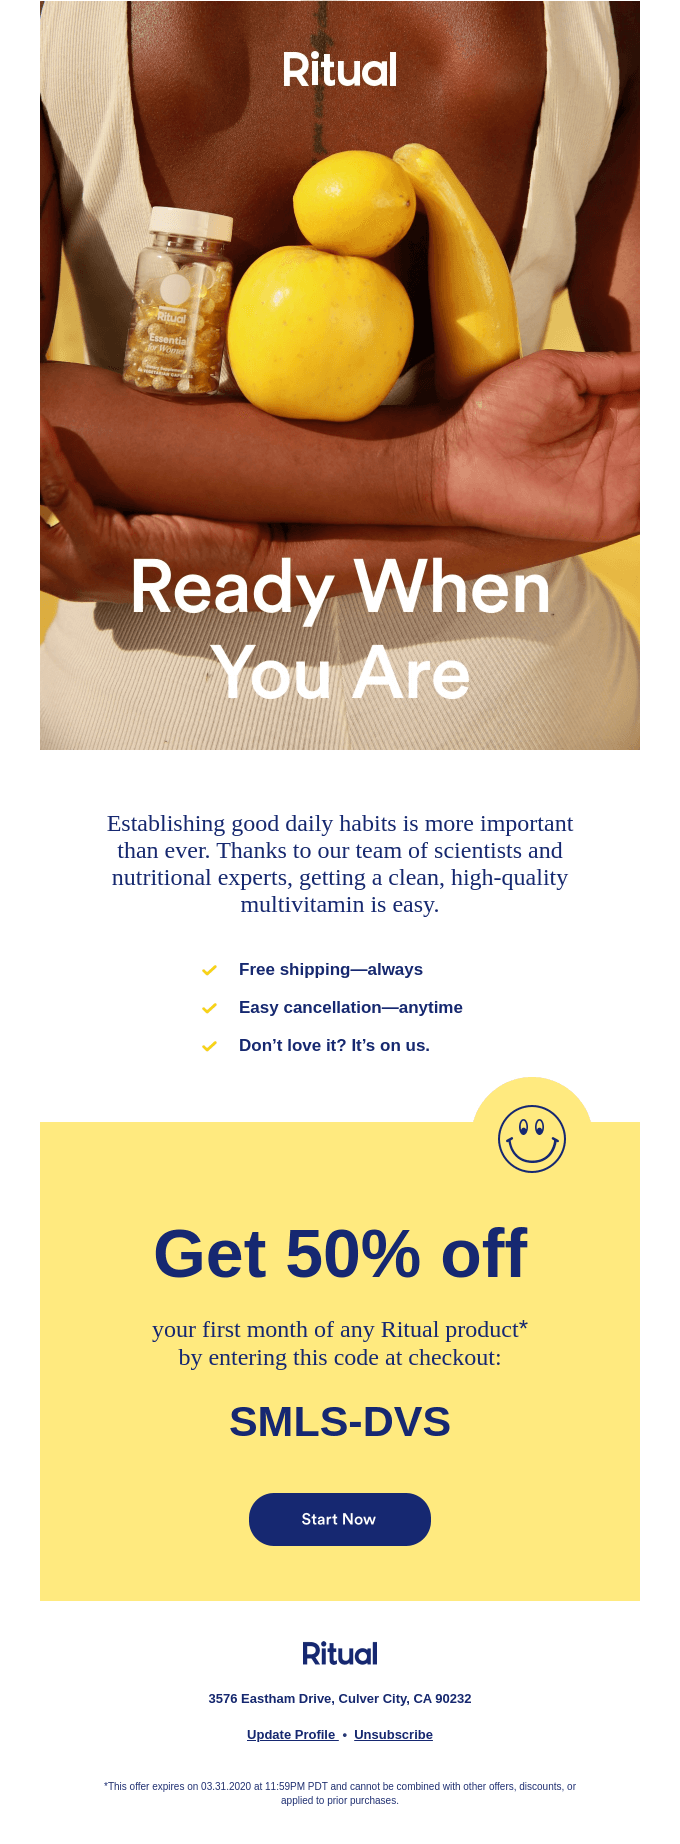 Example of a New Year's email from Ritual.